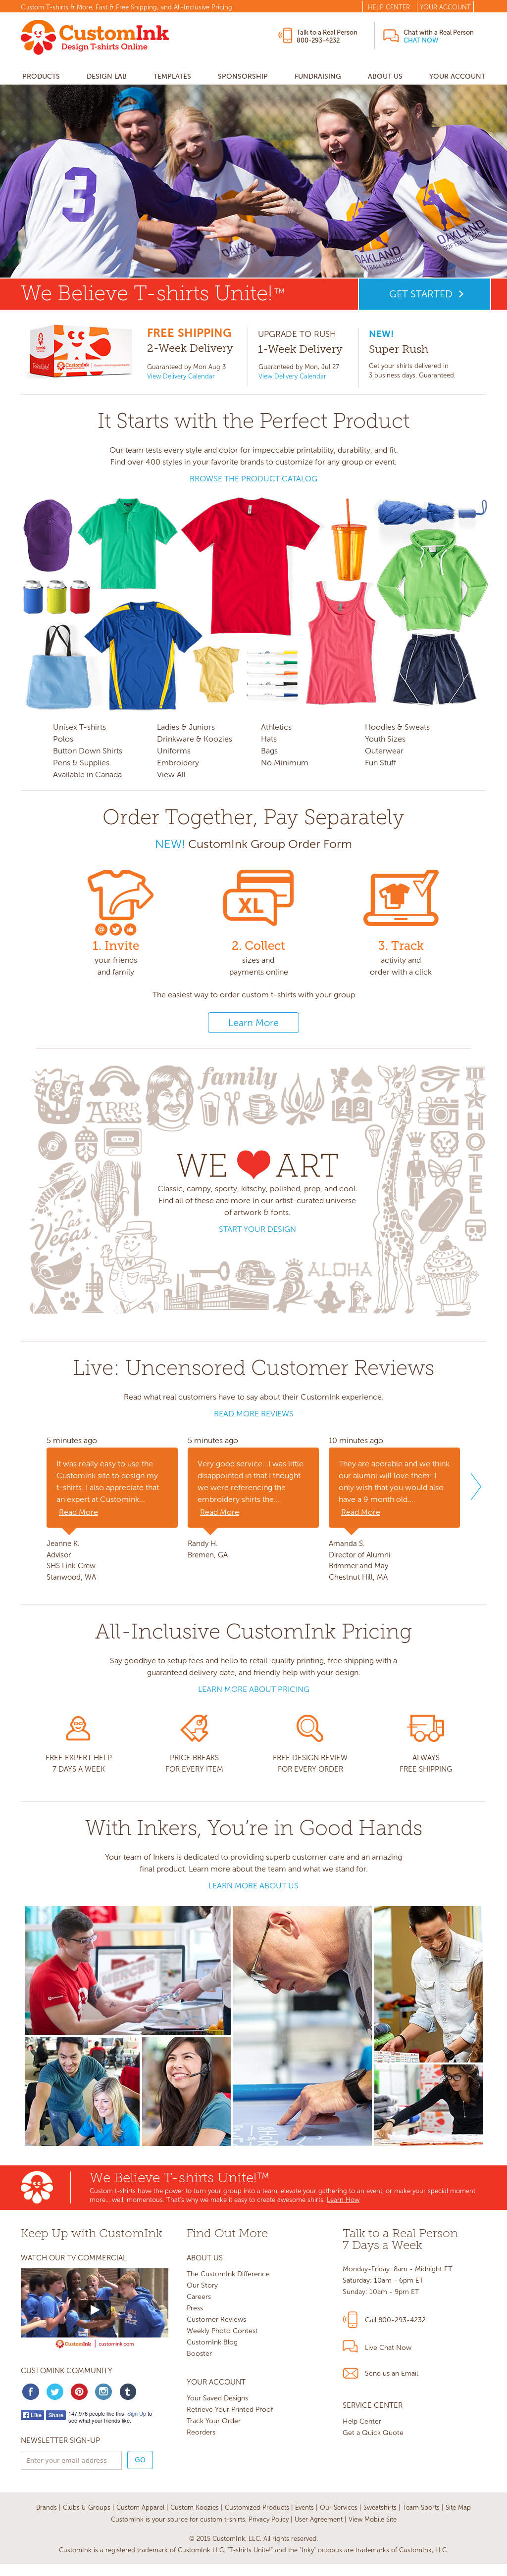 a846544b1 CustomInk Competitors, Revenue and Employees - Owler Company Profile